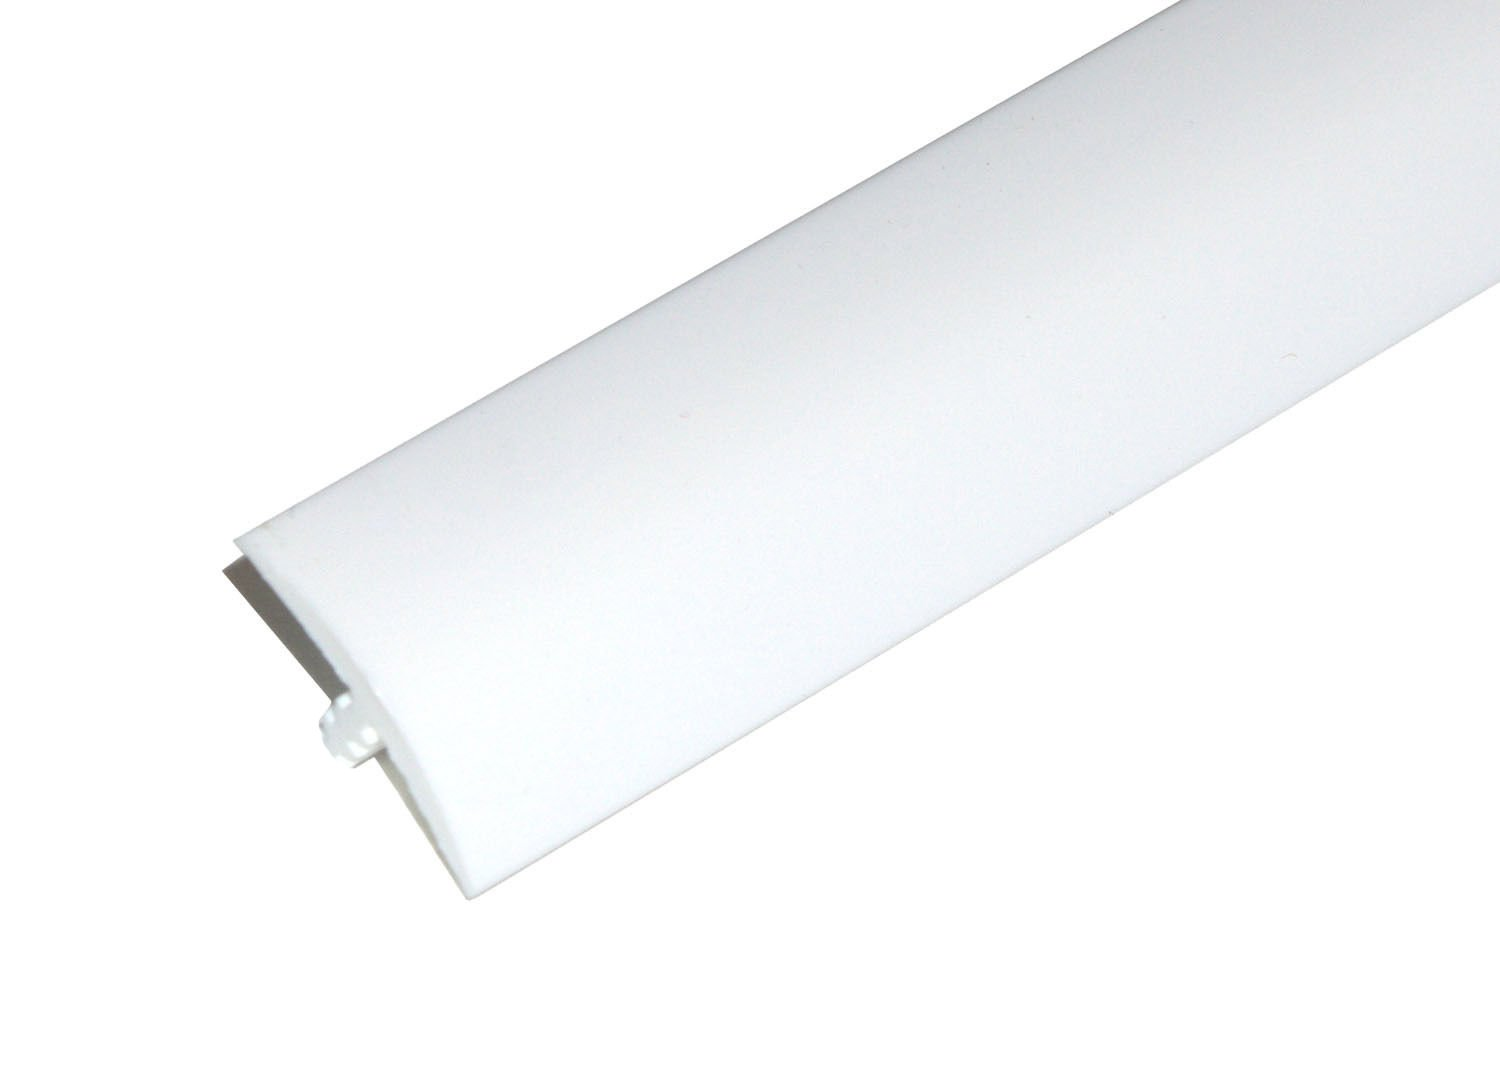 Atomic Market Gloss White 20 Foot 3//4 19mm Smooth White T-Molding Arcade Mame Machines